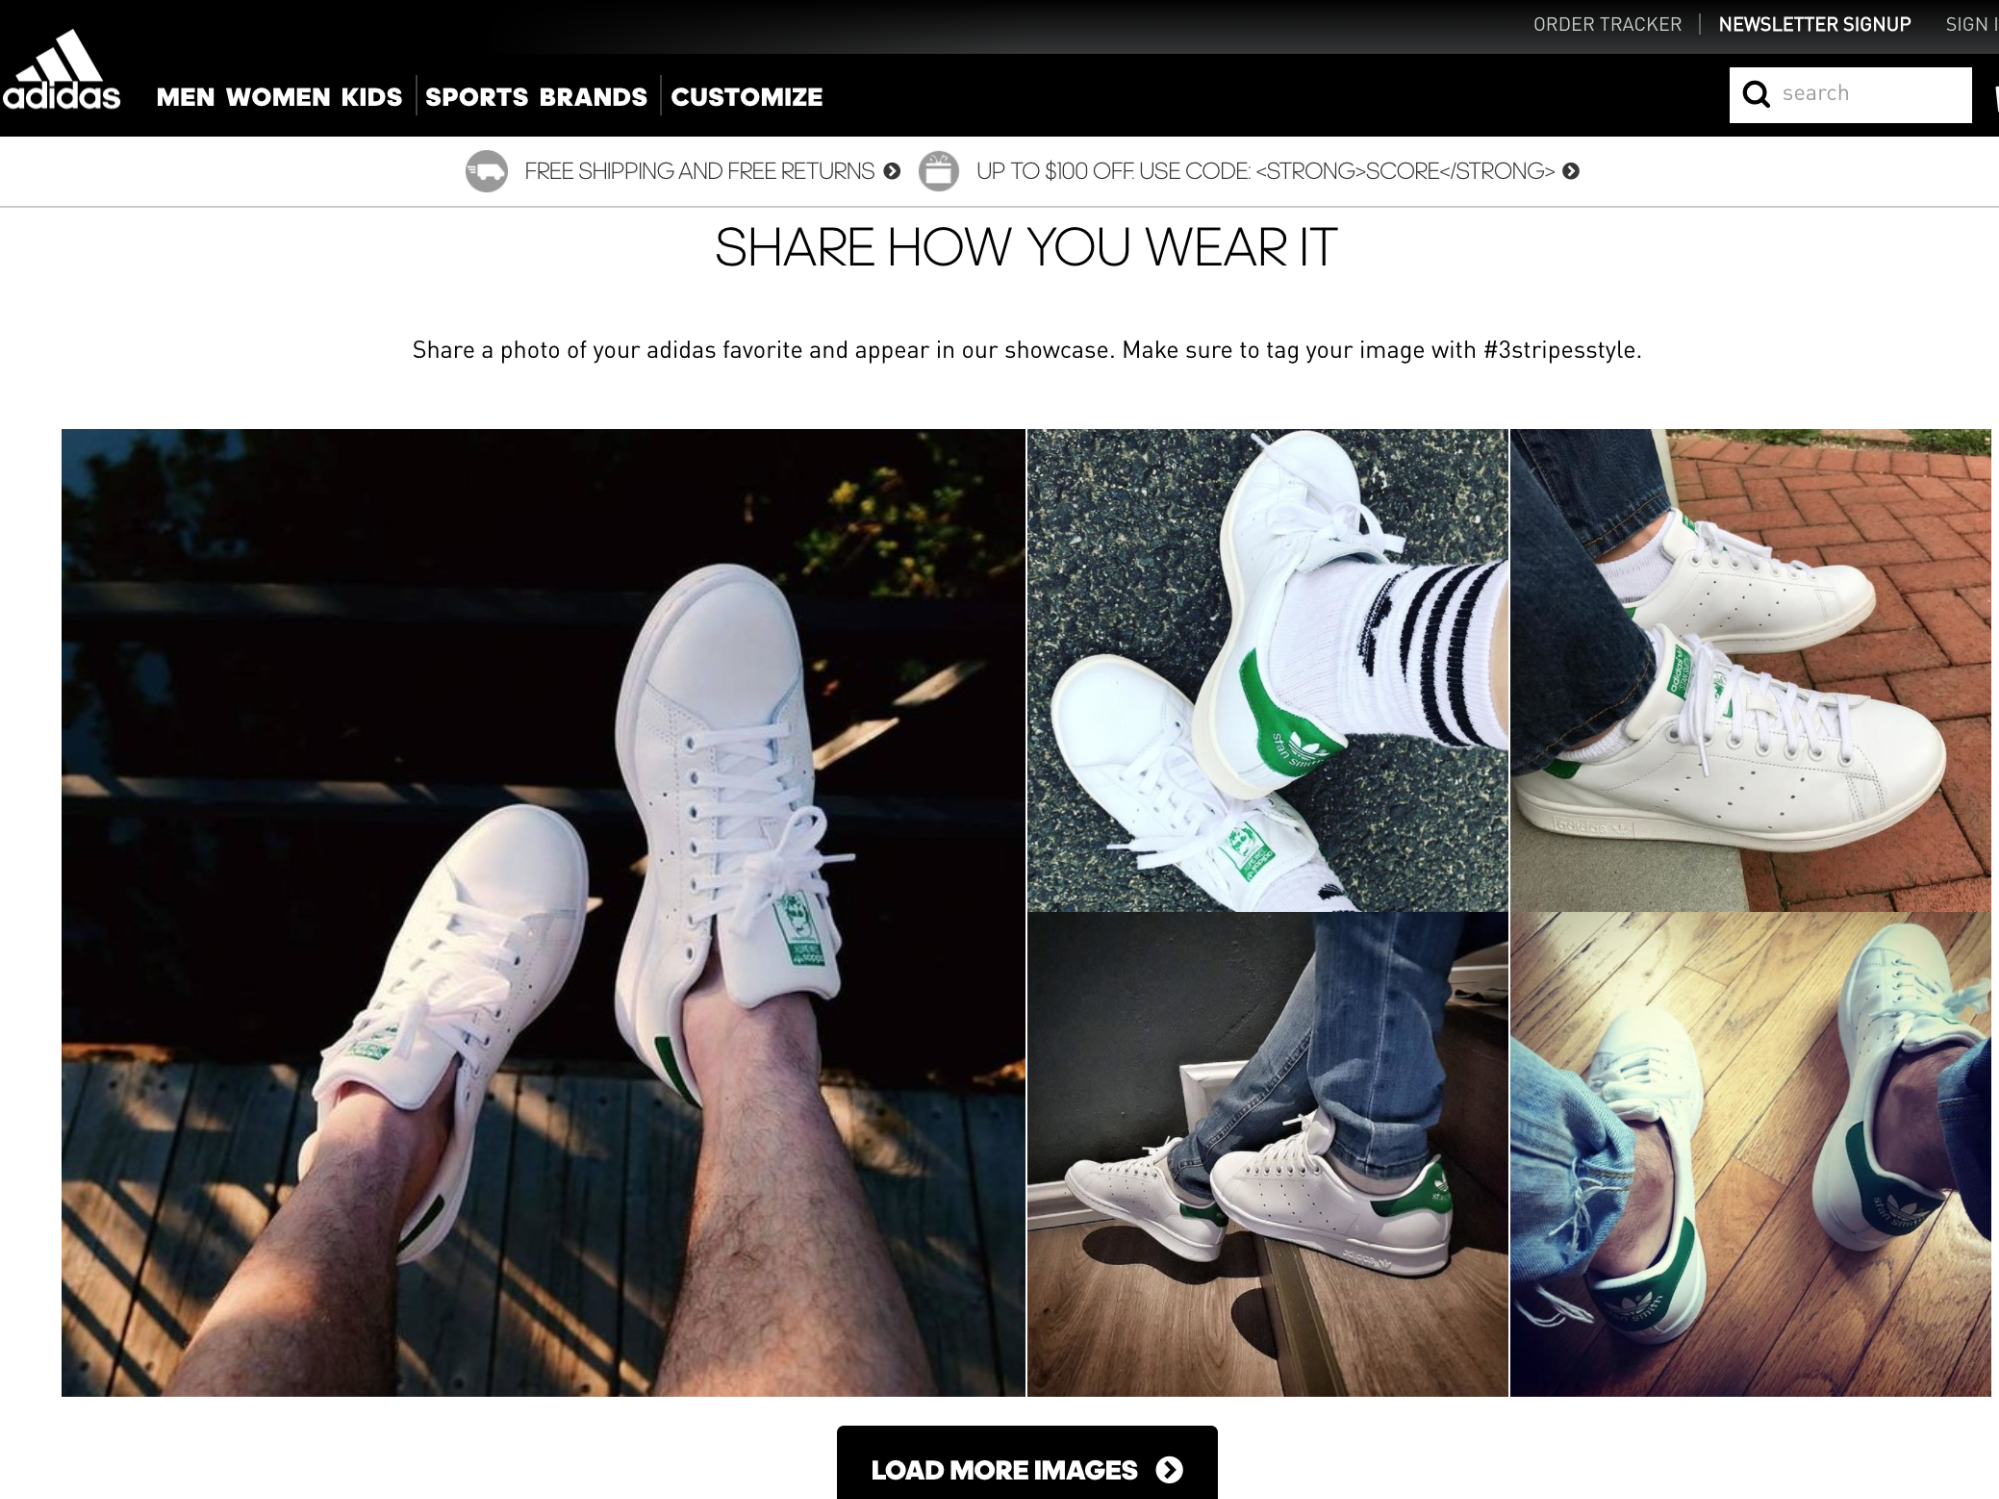 Screenshot showing a page on adidas.com